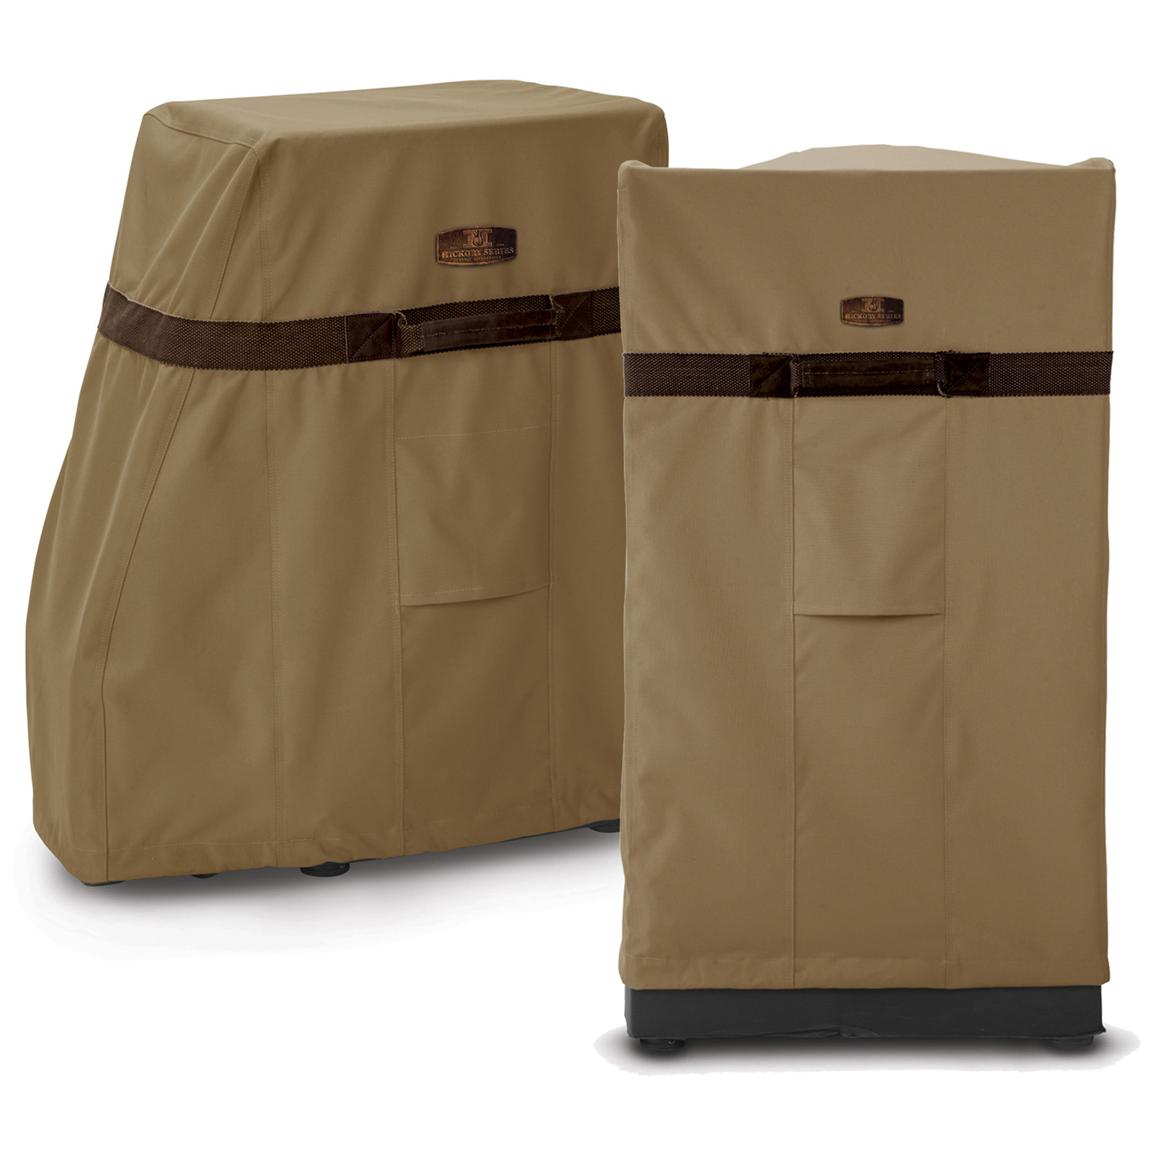 Classic Accessories™ Hickory Series Square Smoker Cover